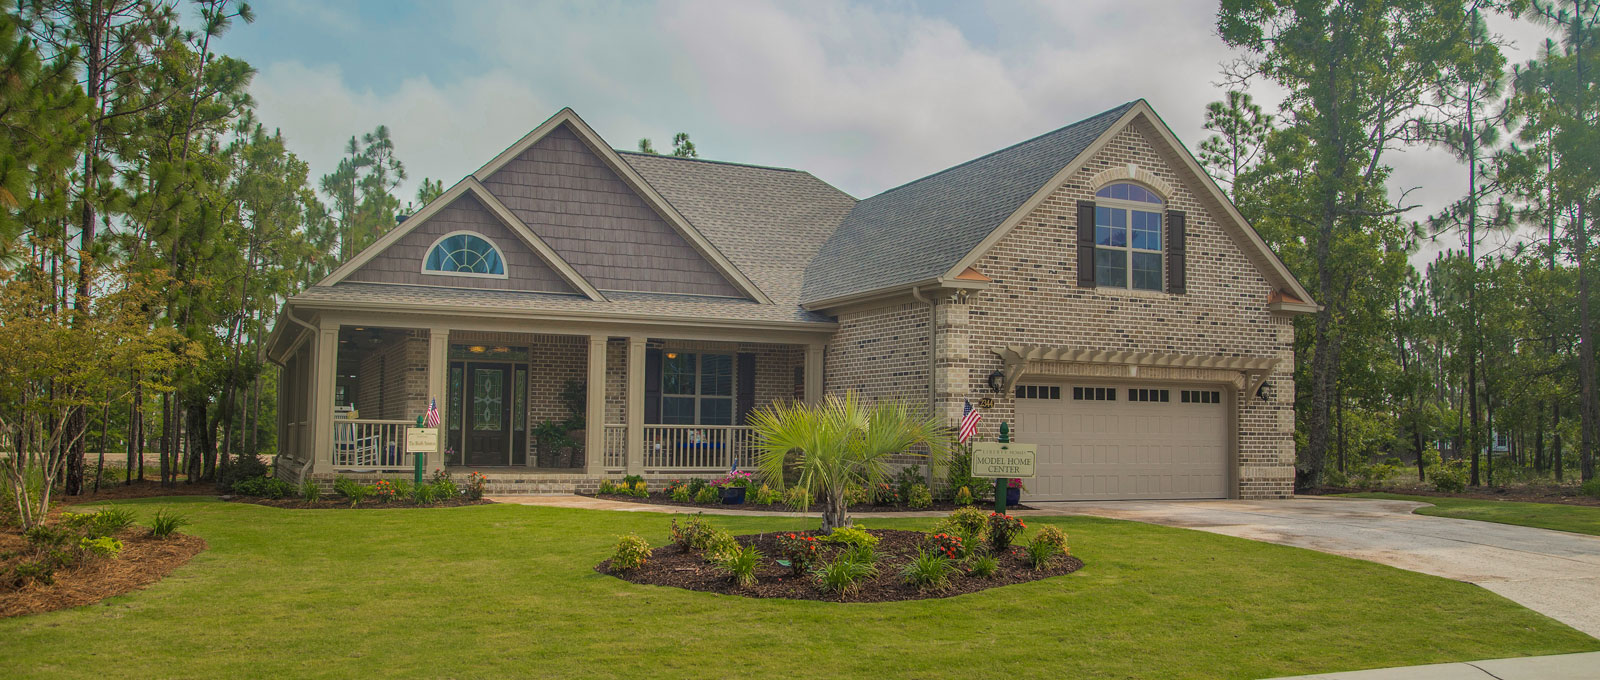 Liberty Homes Compass Pointe